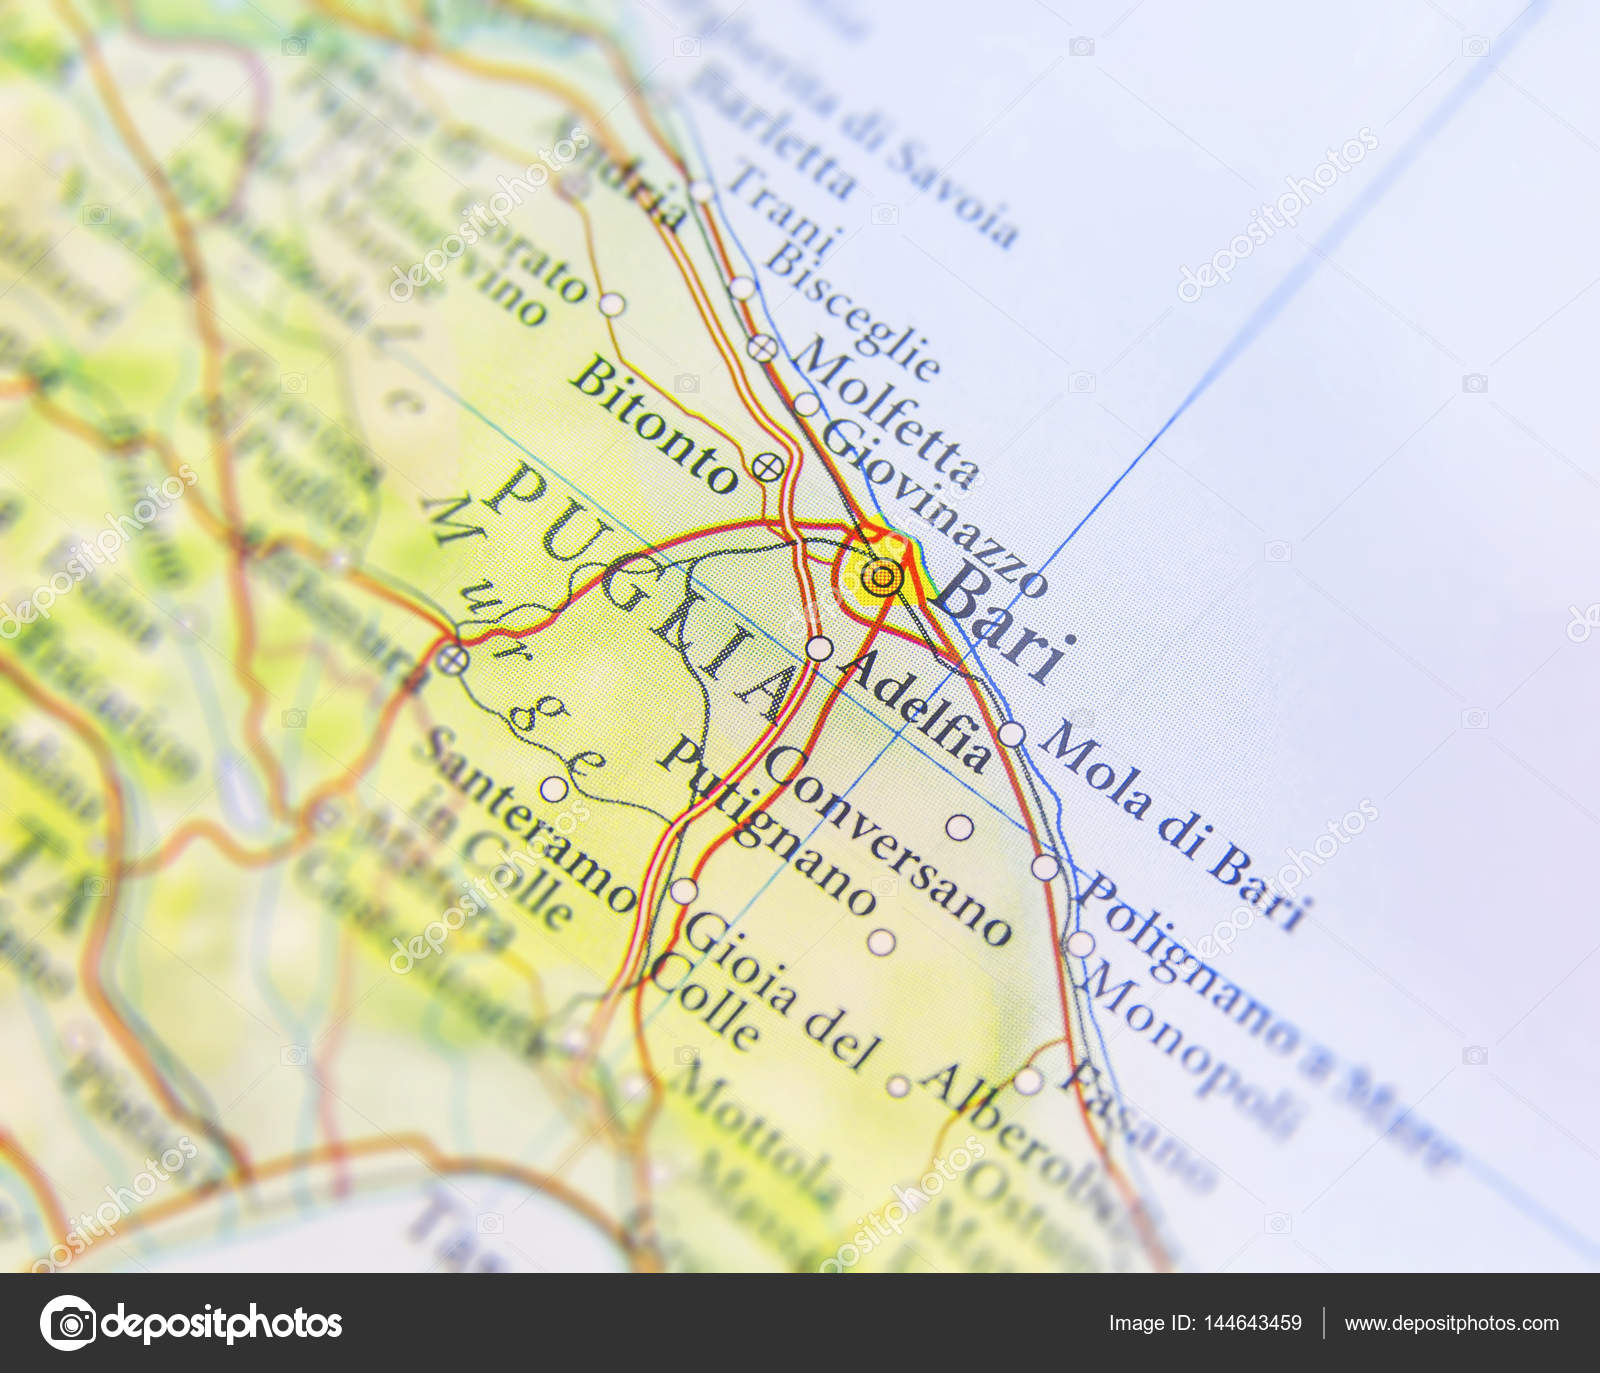 Geographic Map Of European Country Italy With Bari City Stock